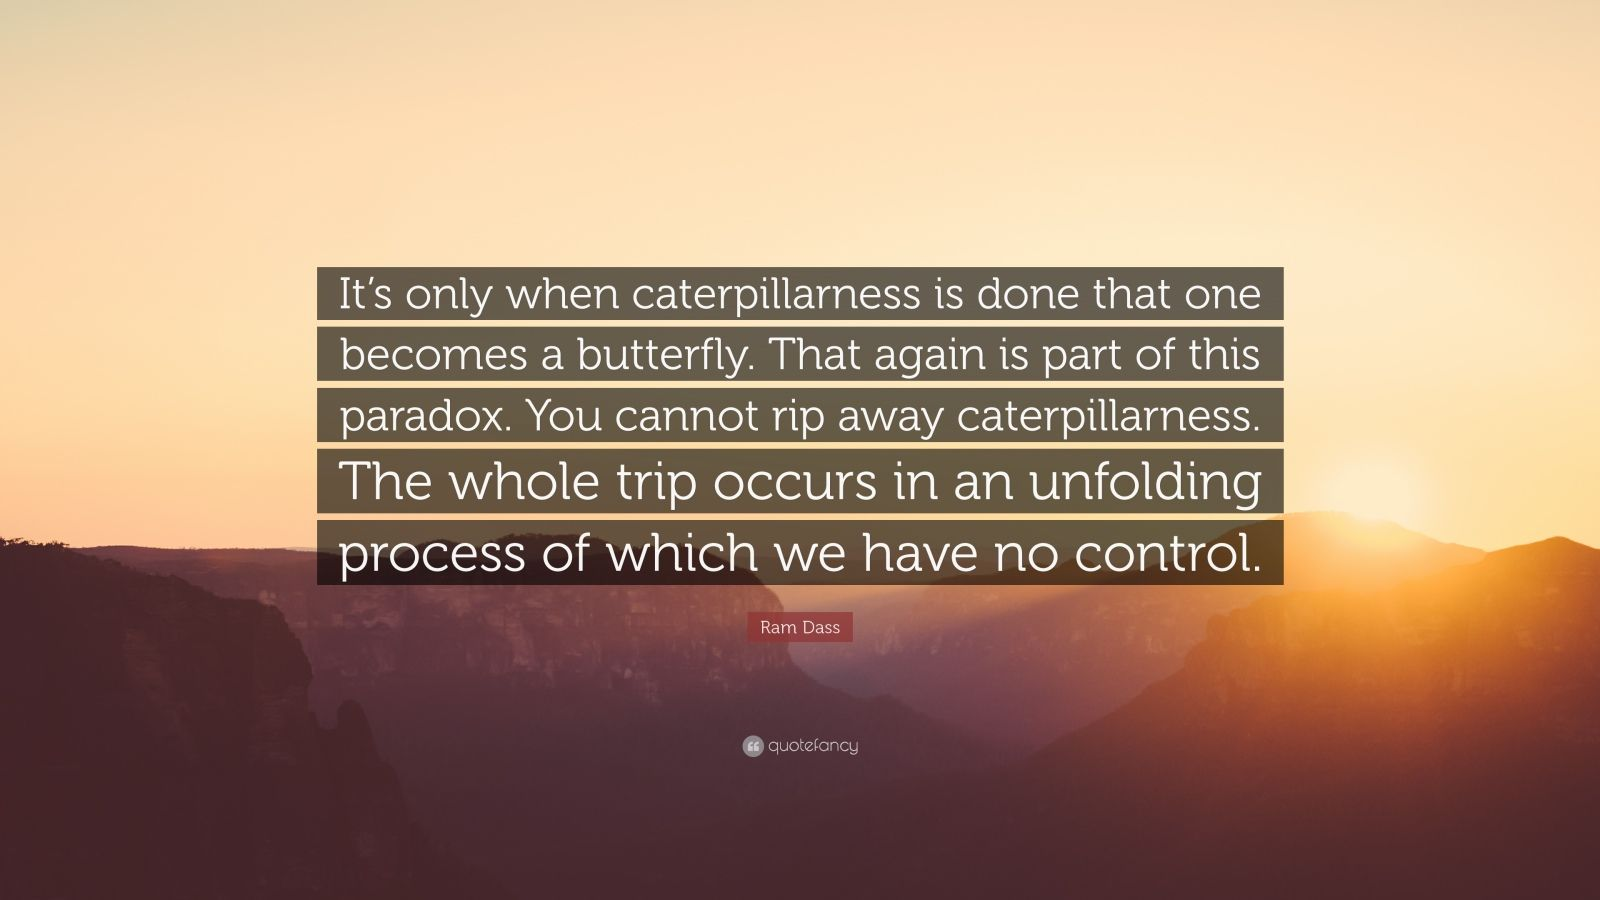 """Ram Dass Quote: """"It's only when caterpillarness is done that one becomes a butterfly. That again is part of this paradox. You cannot rip away caterpillarness. The whole trip occurs in an unfolding process of which we have no control."""""""